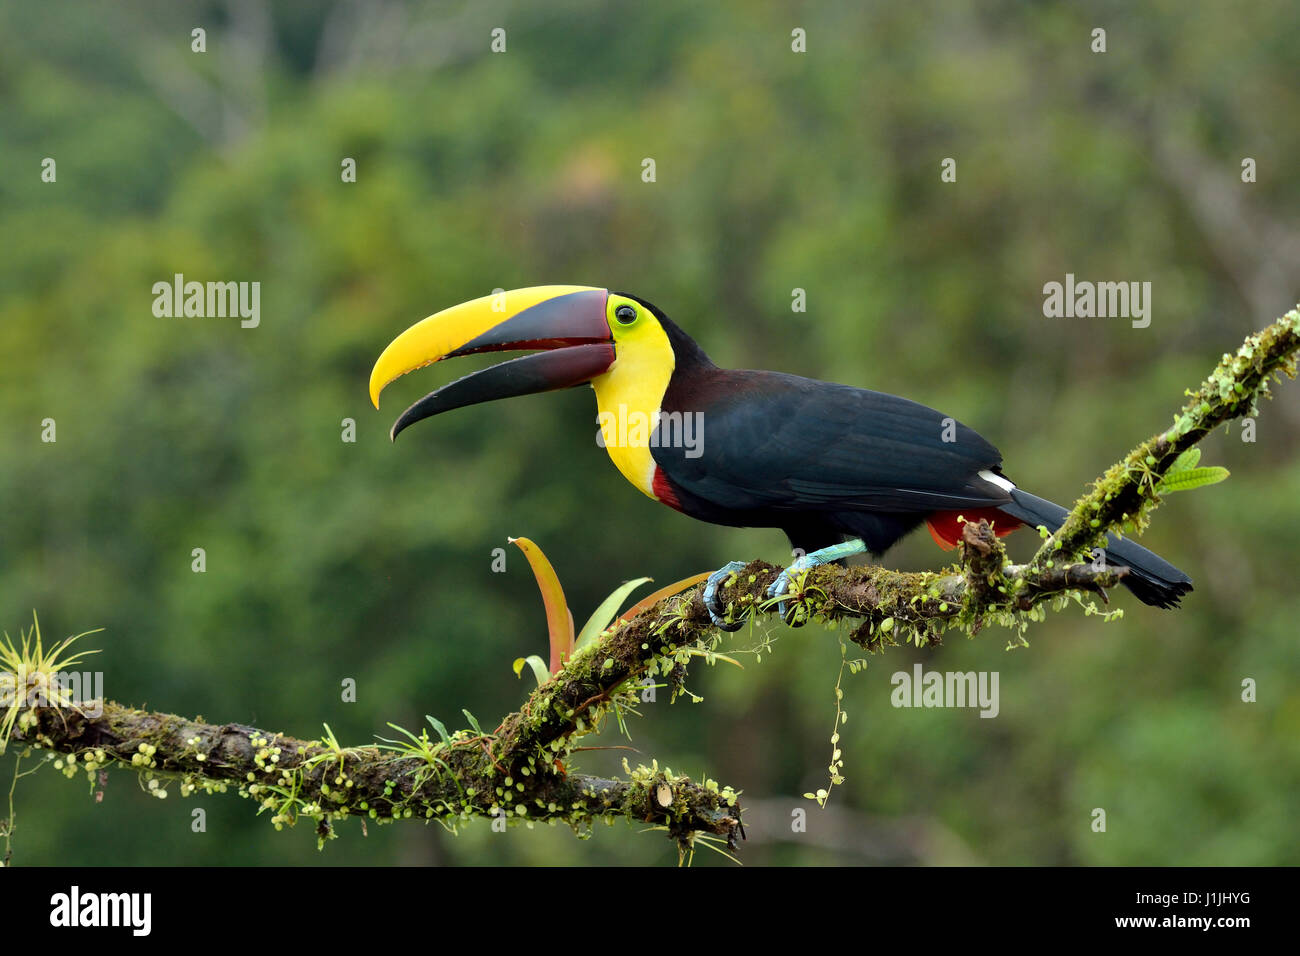 Chestnut-mandibled Toucan in Costa Rica rain forest - Stock Image